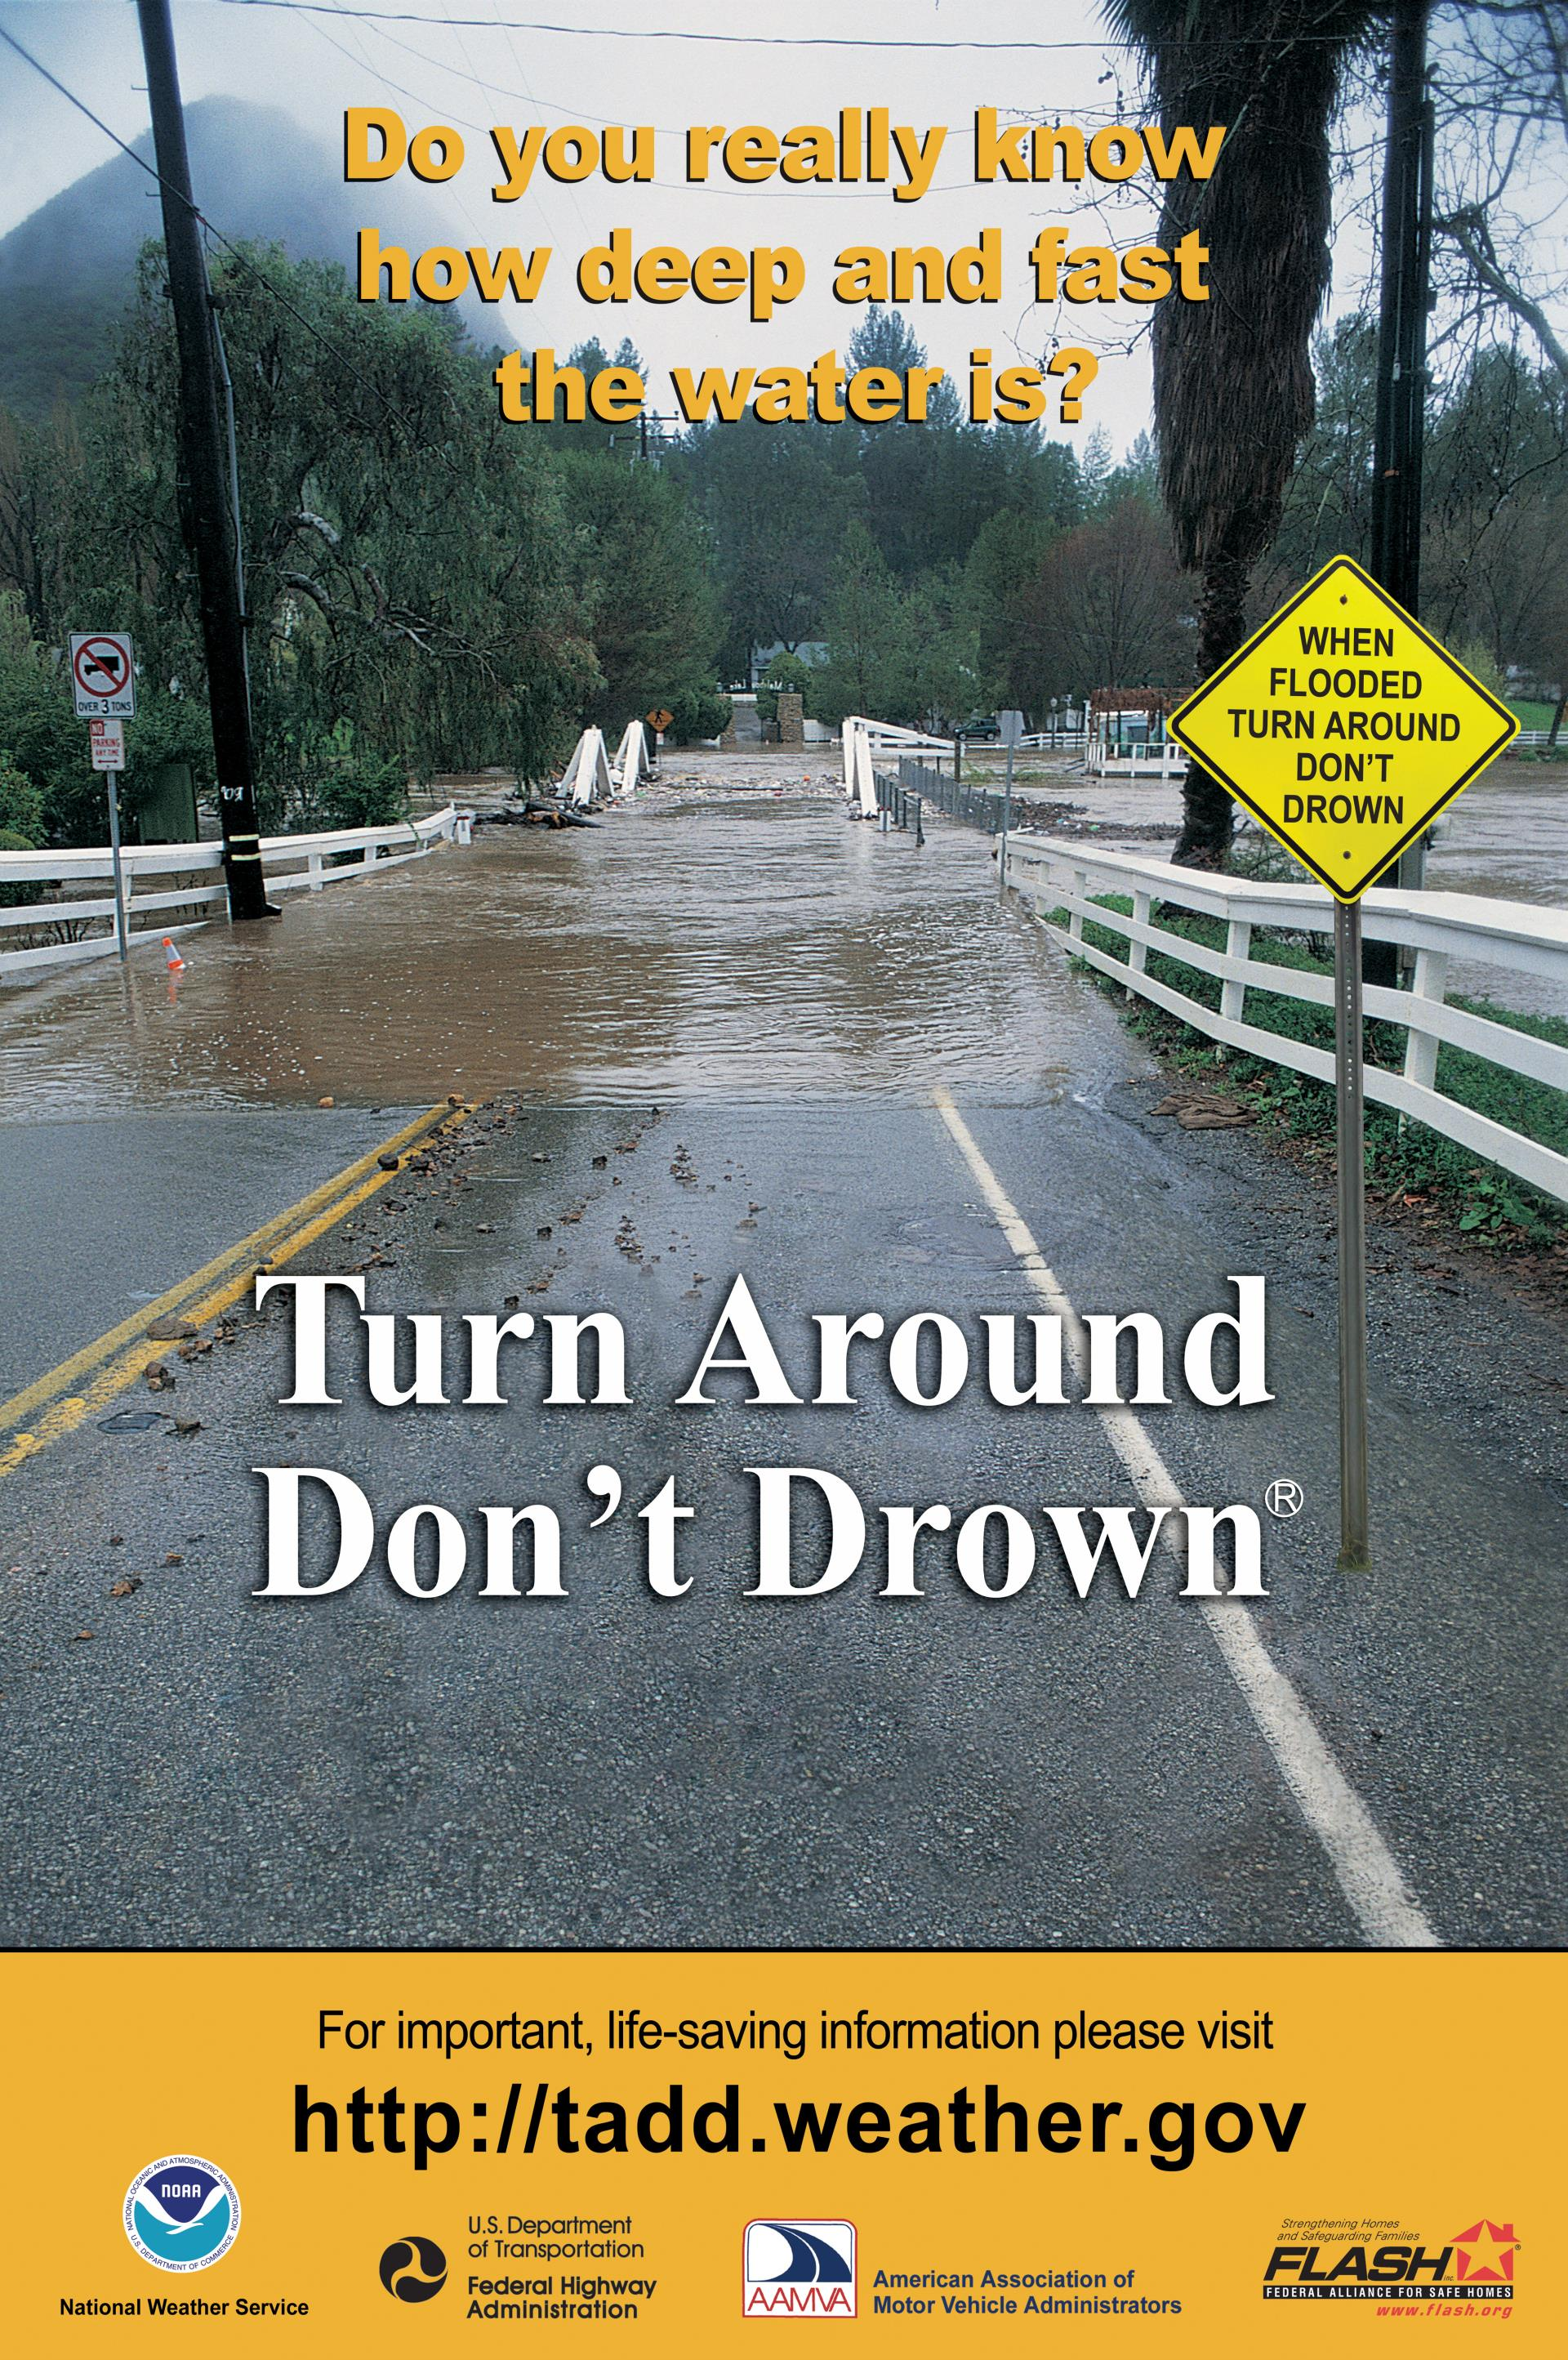 Turn Around Don't Drown Message